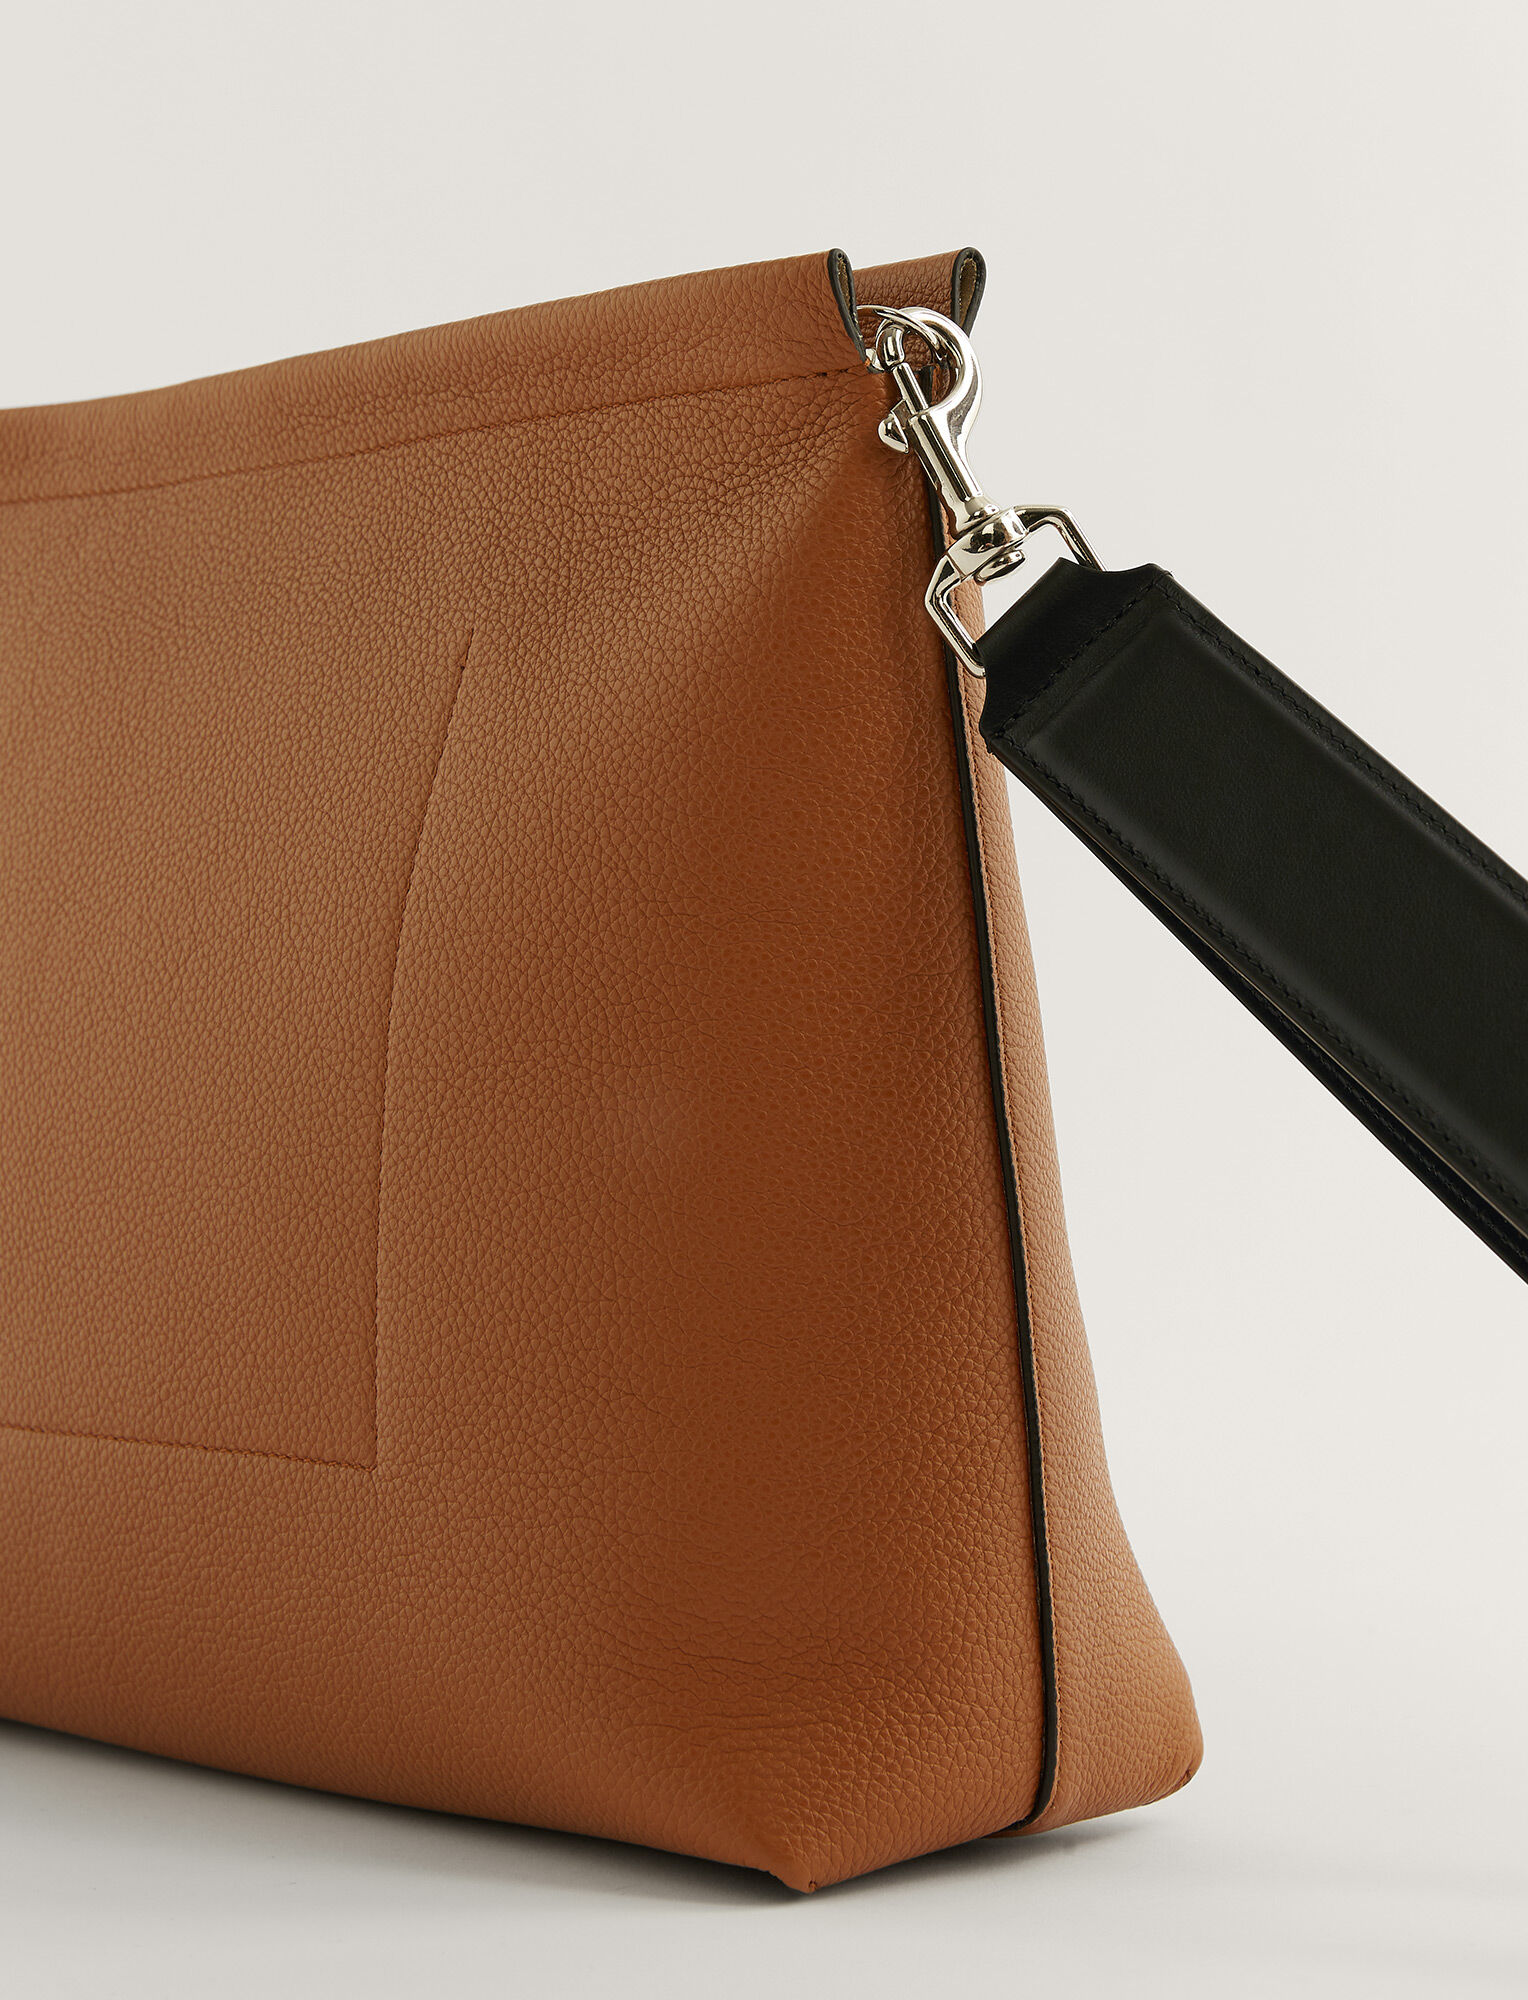 Joseph, Grain Leather Clutch Bag, in Cognac